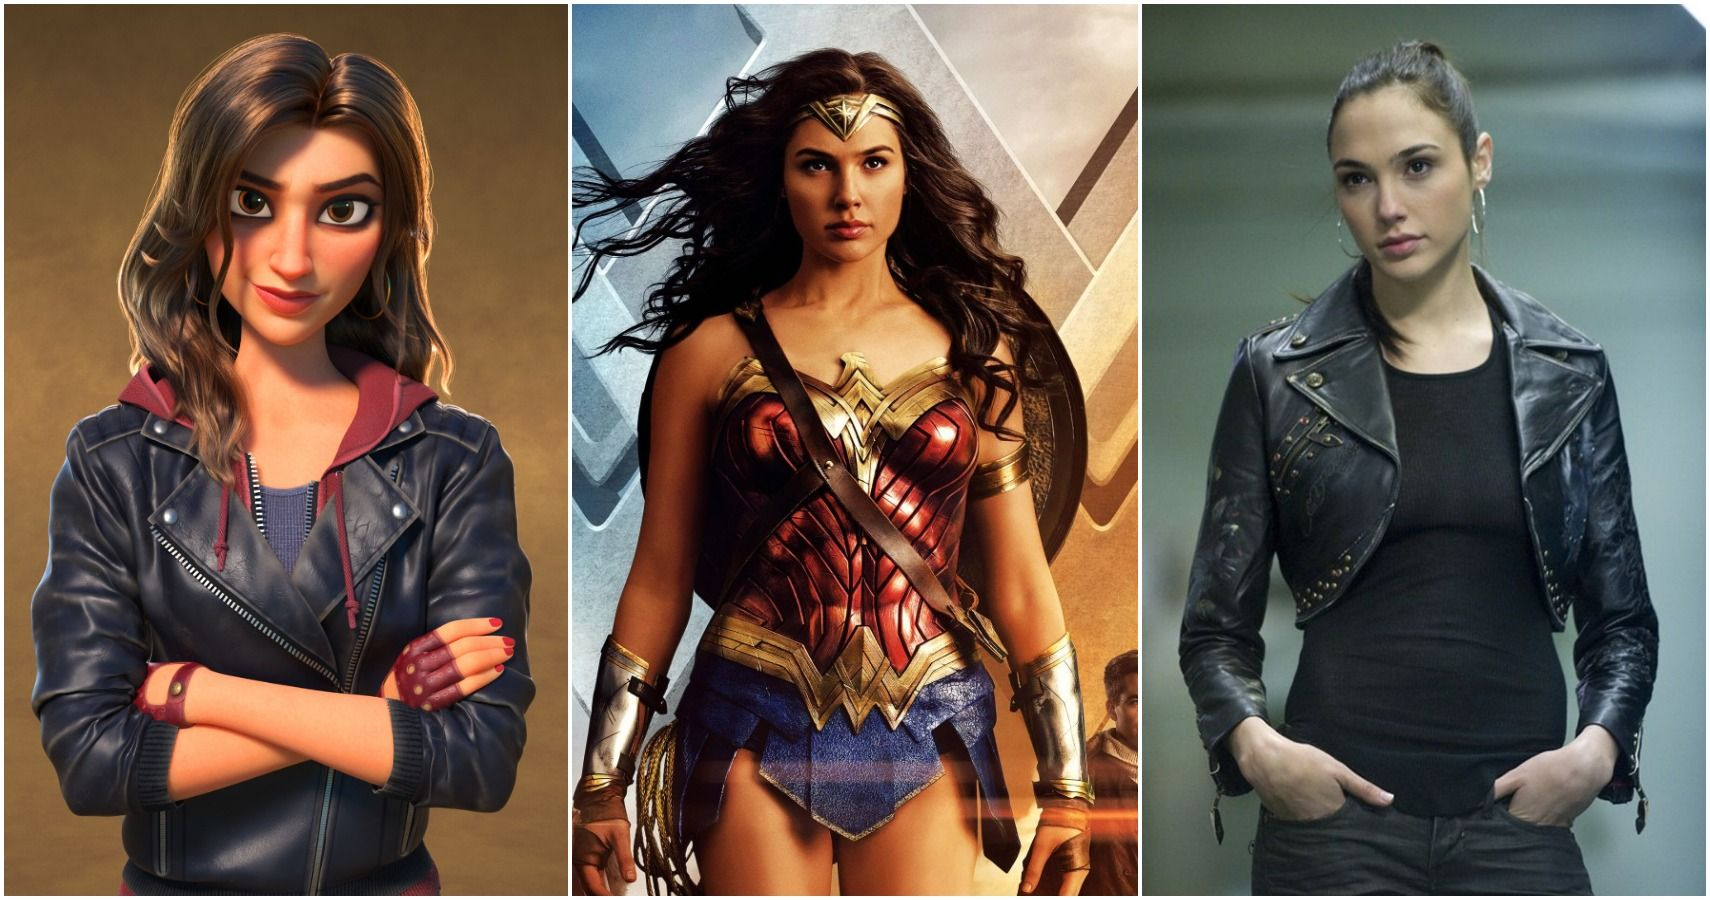 Gal Gadot S 10 Best Movies According To Metacritic